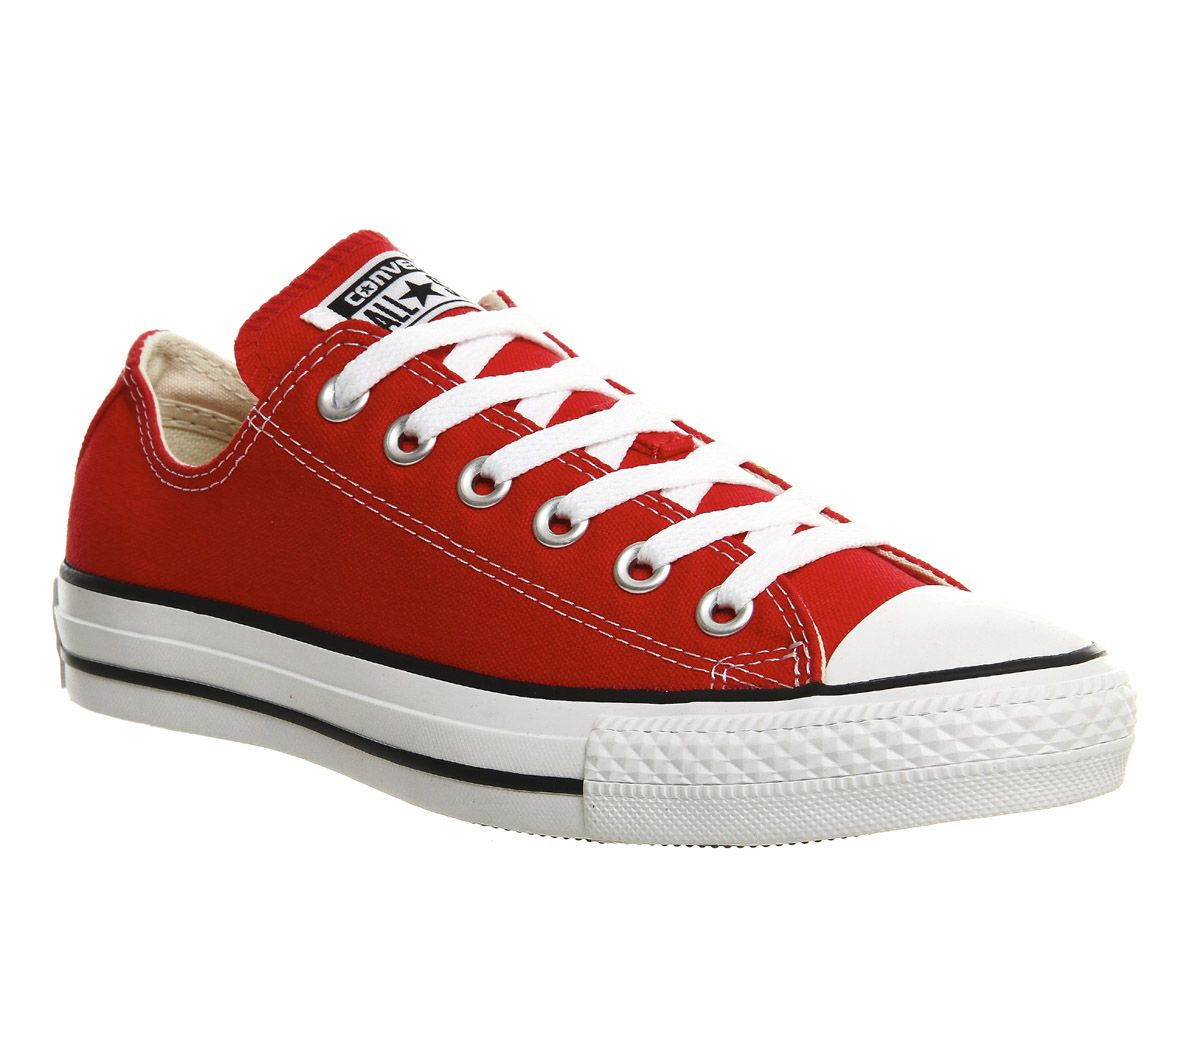 e41a54de25a3 Converse All Star Low Red Canvas - Unisex Sports